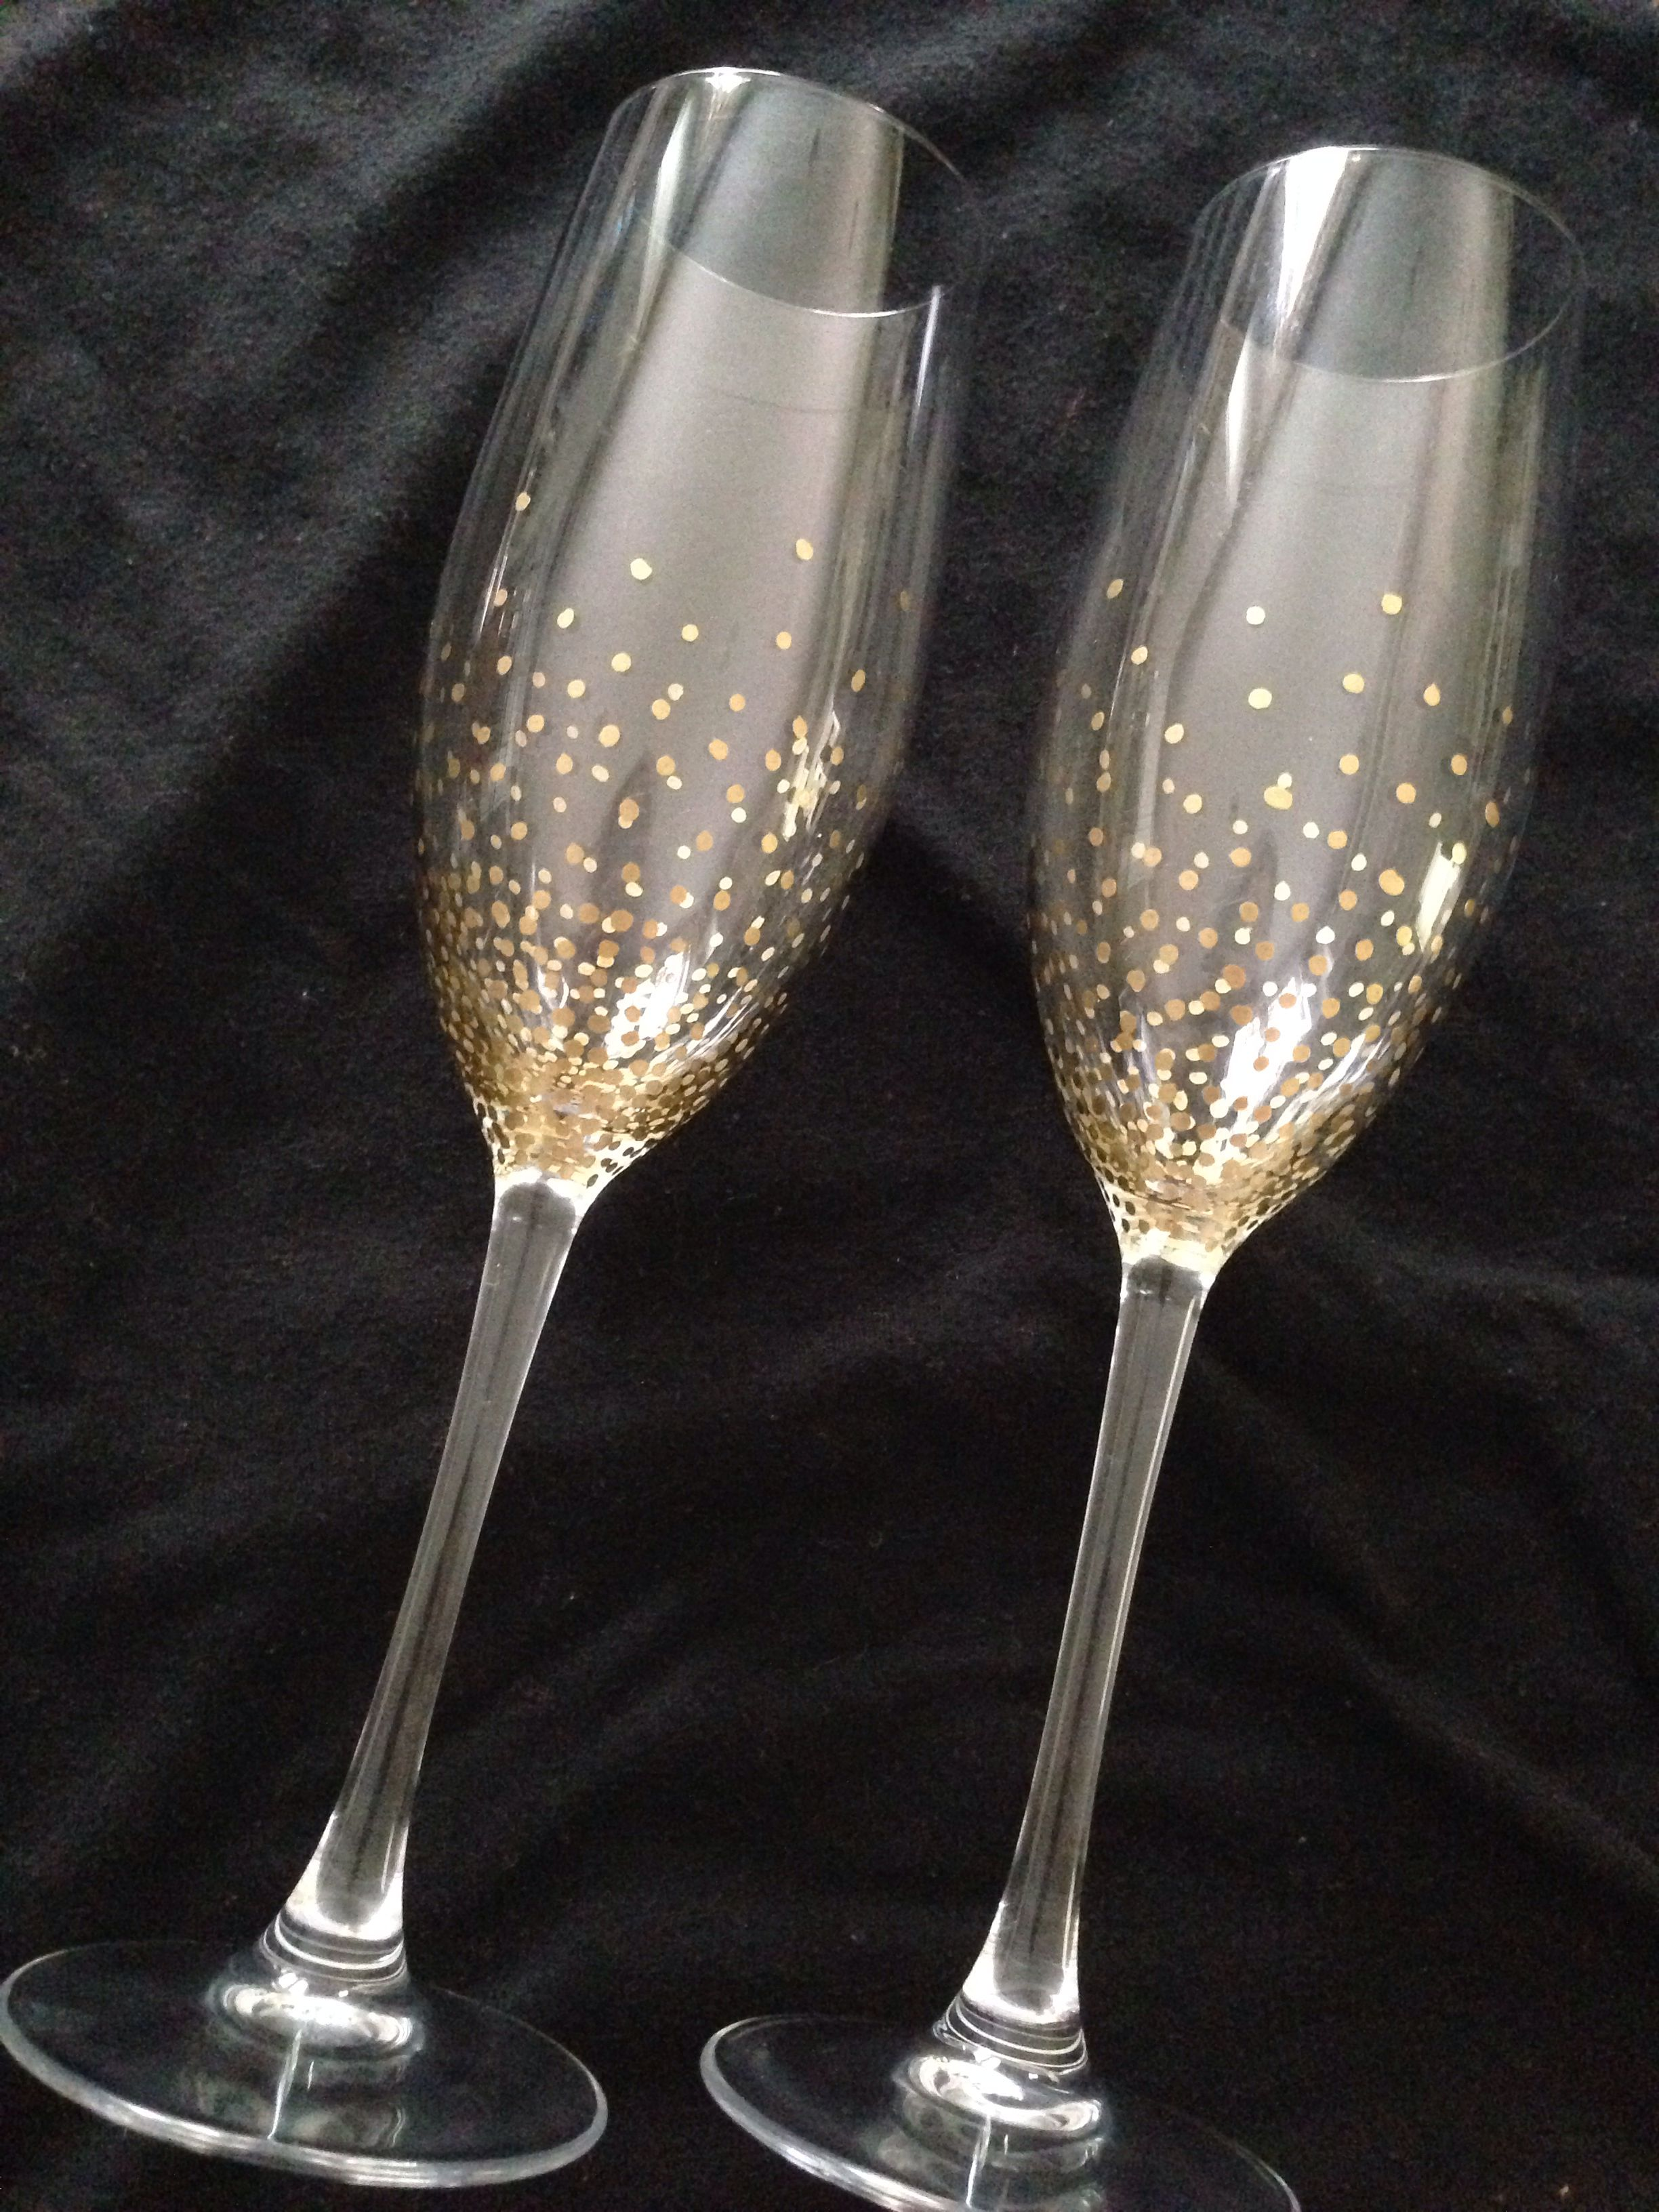 Decoration Coupe De Champagne Hand Painted Champagne Glasses I Made Something Similar